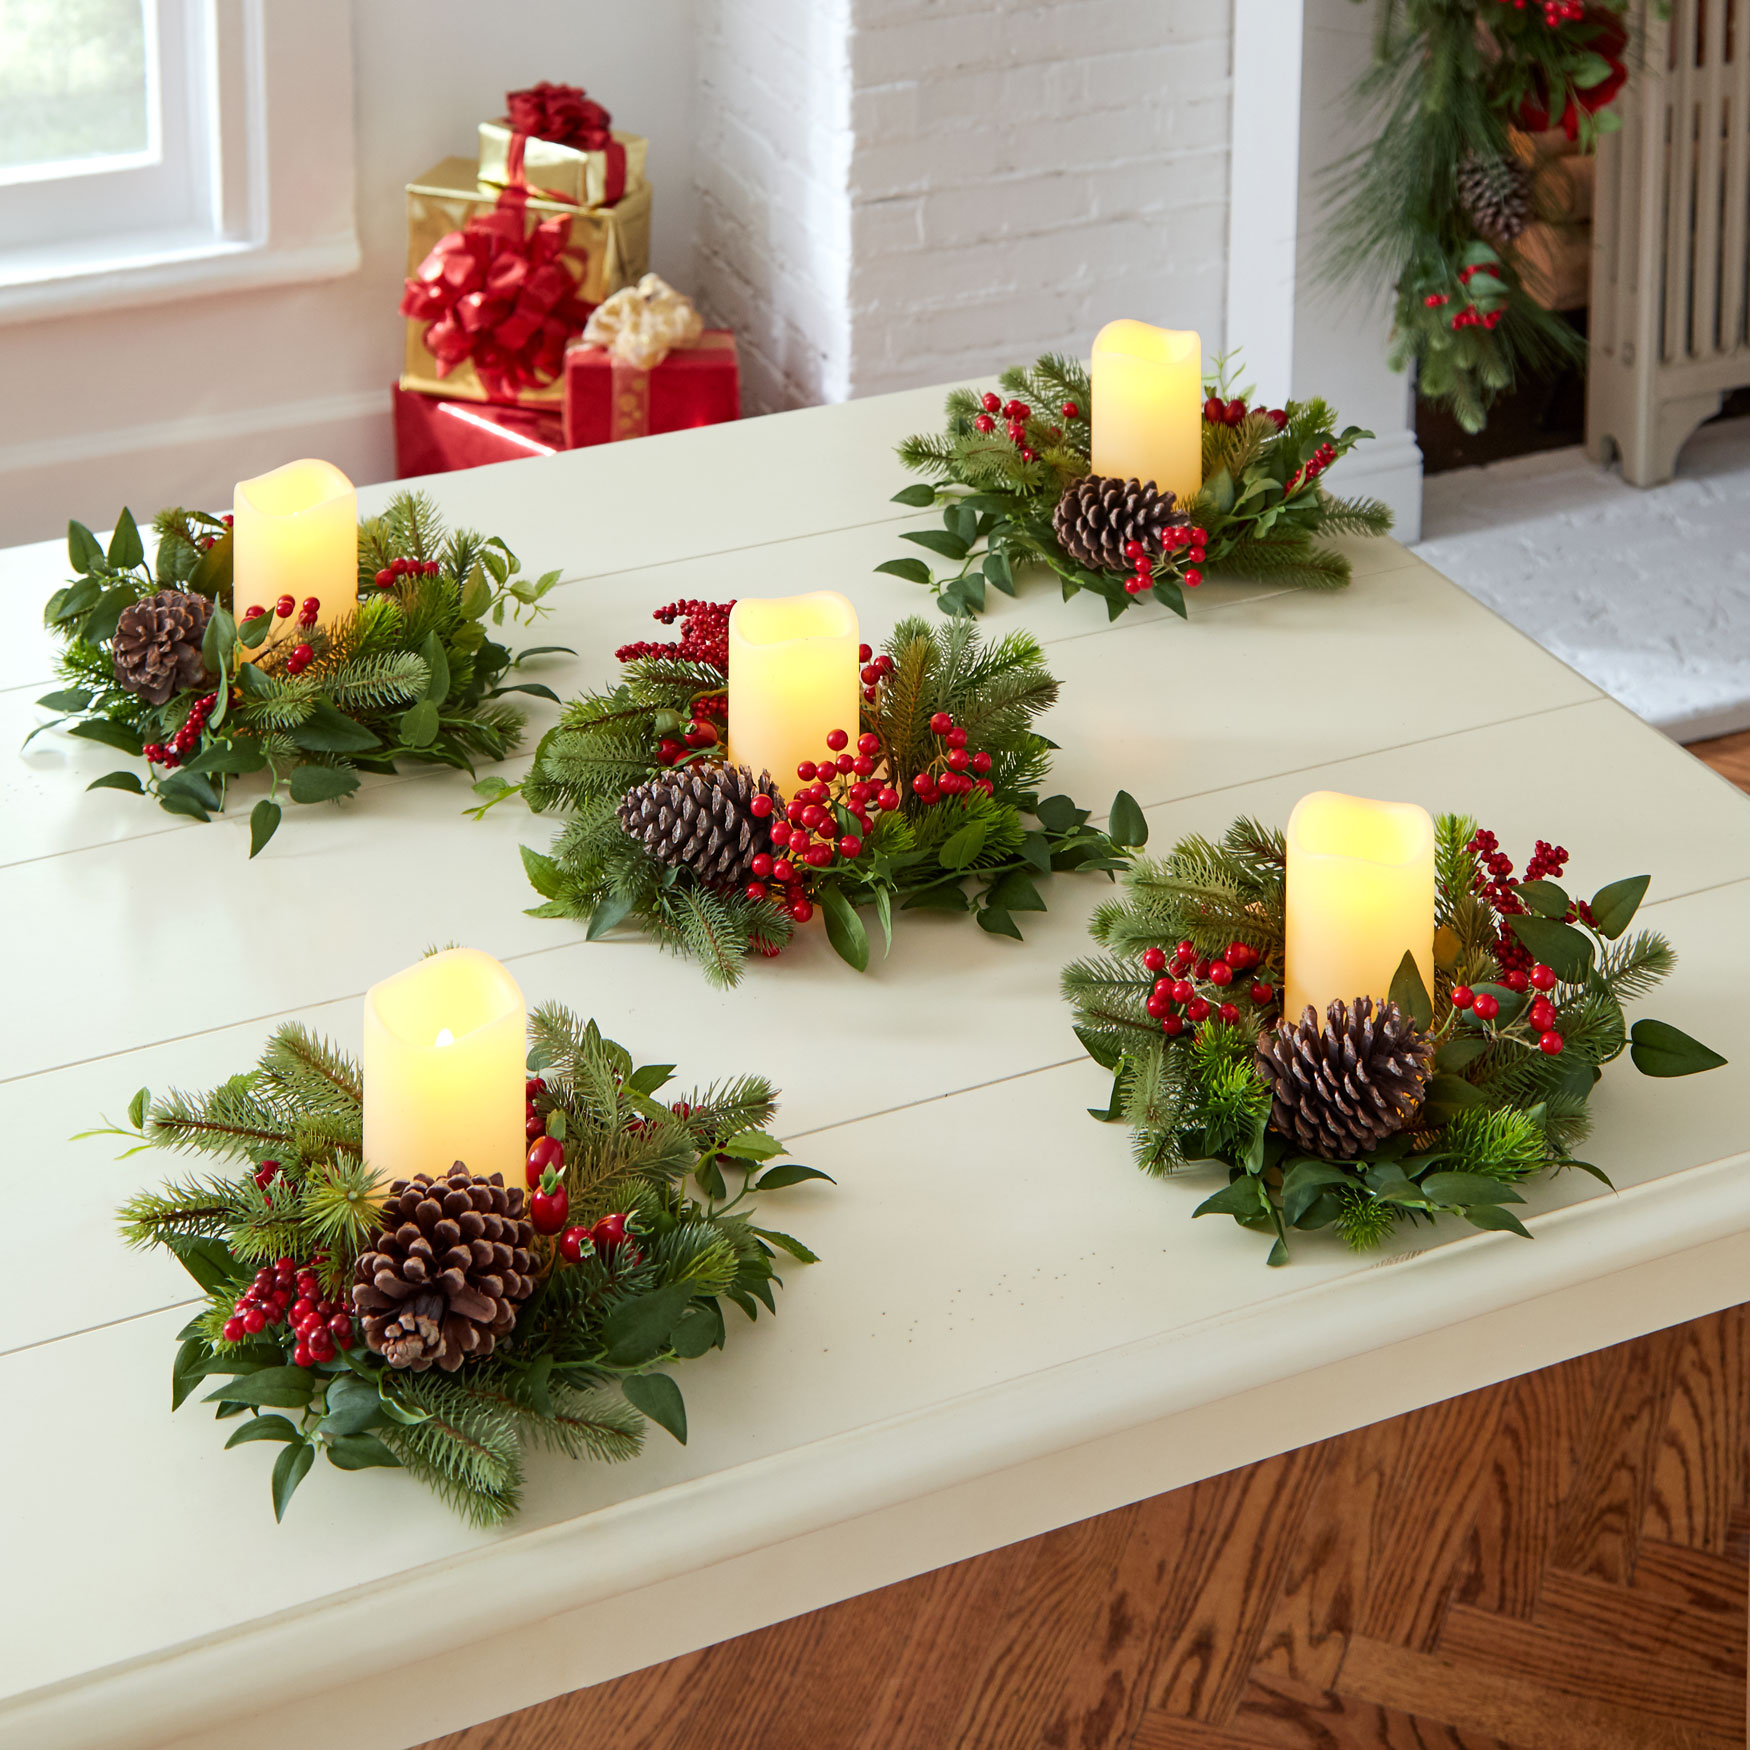 bellmead holiday candle ring set of 5 multi - Decorative Christmas Candle Rings